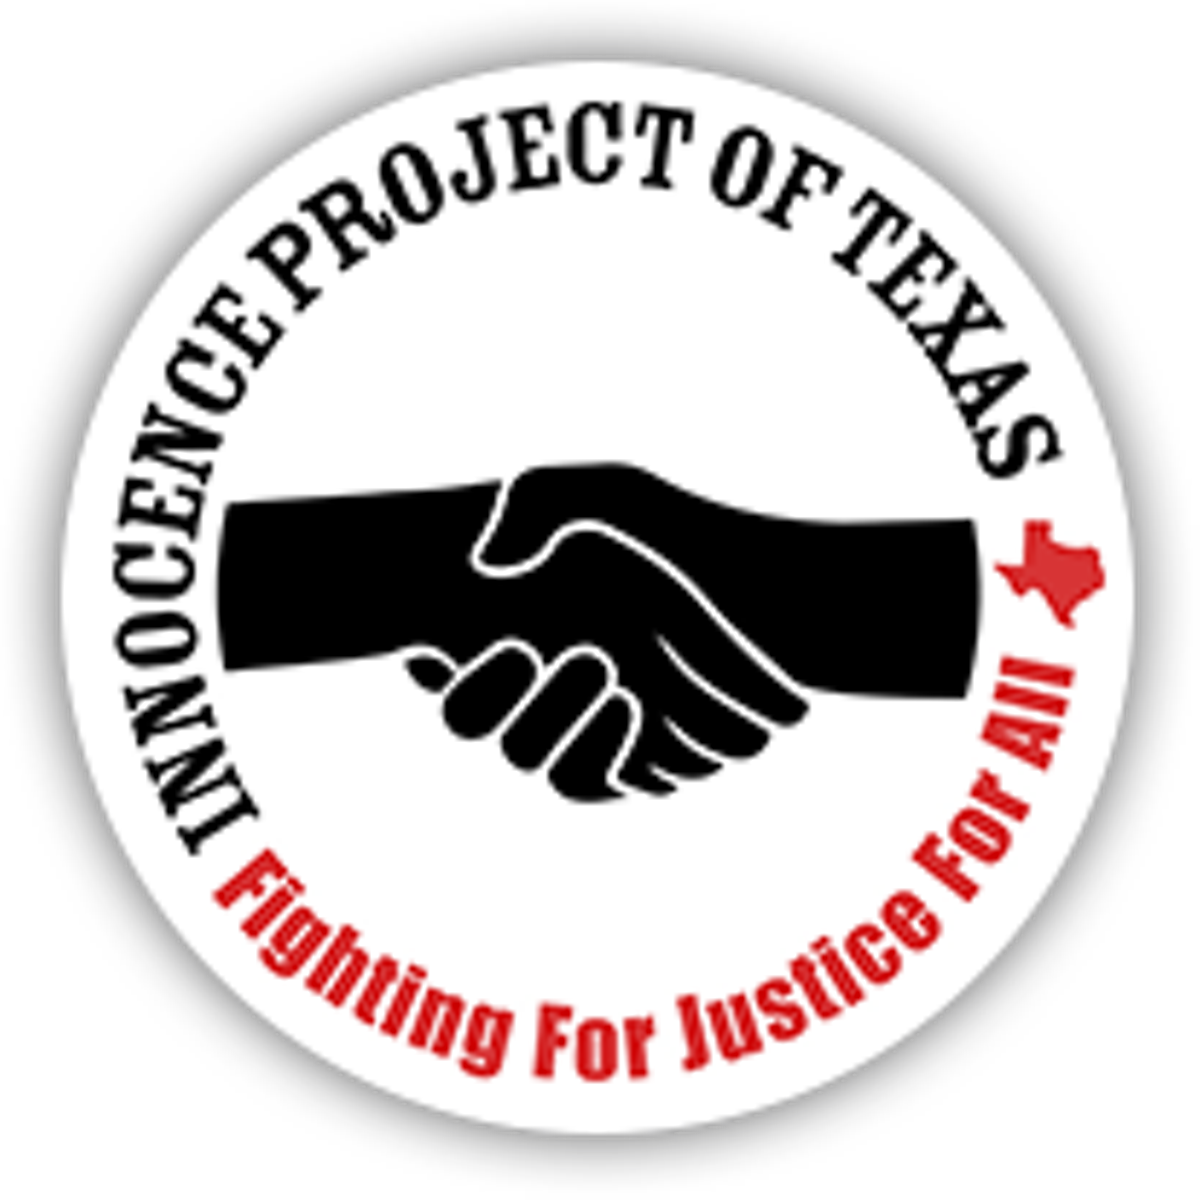 innocence project of texas Programs: during this fiscal year, the innocence project of texas has continued to investigate and litigate claims of actual innocence made my texas inmates we continued our state-wide arson review in partnership with the state fire marshal's office.